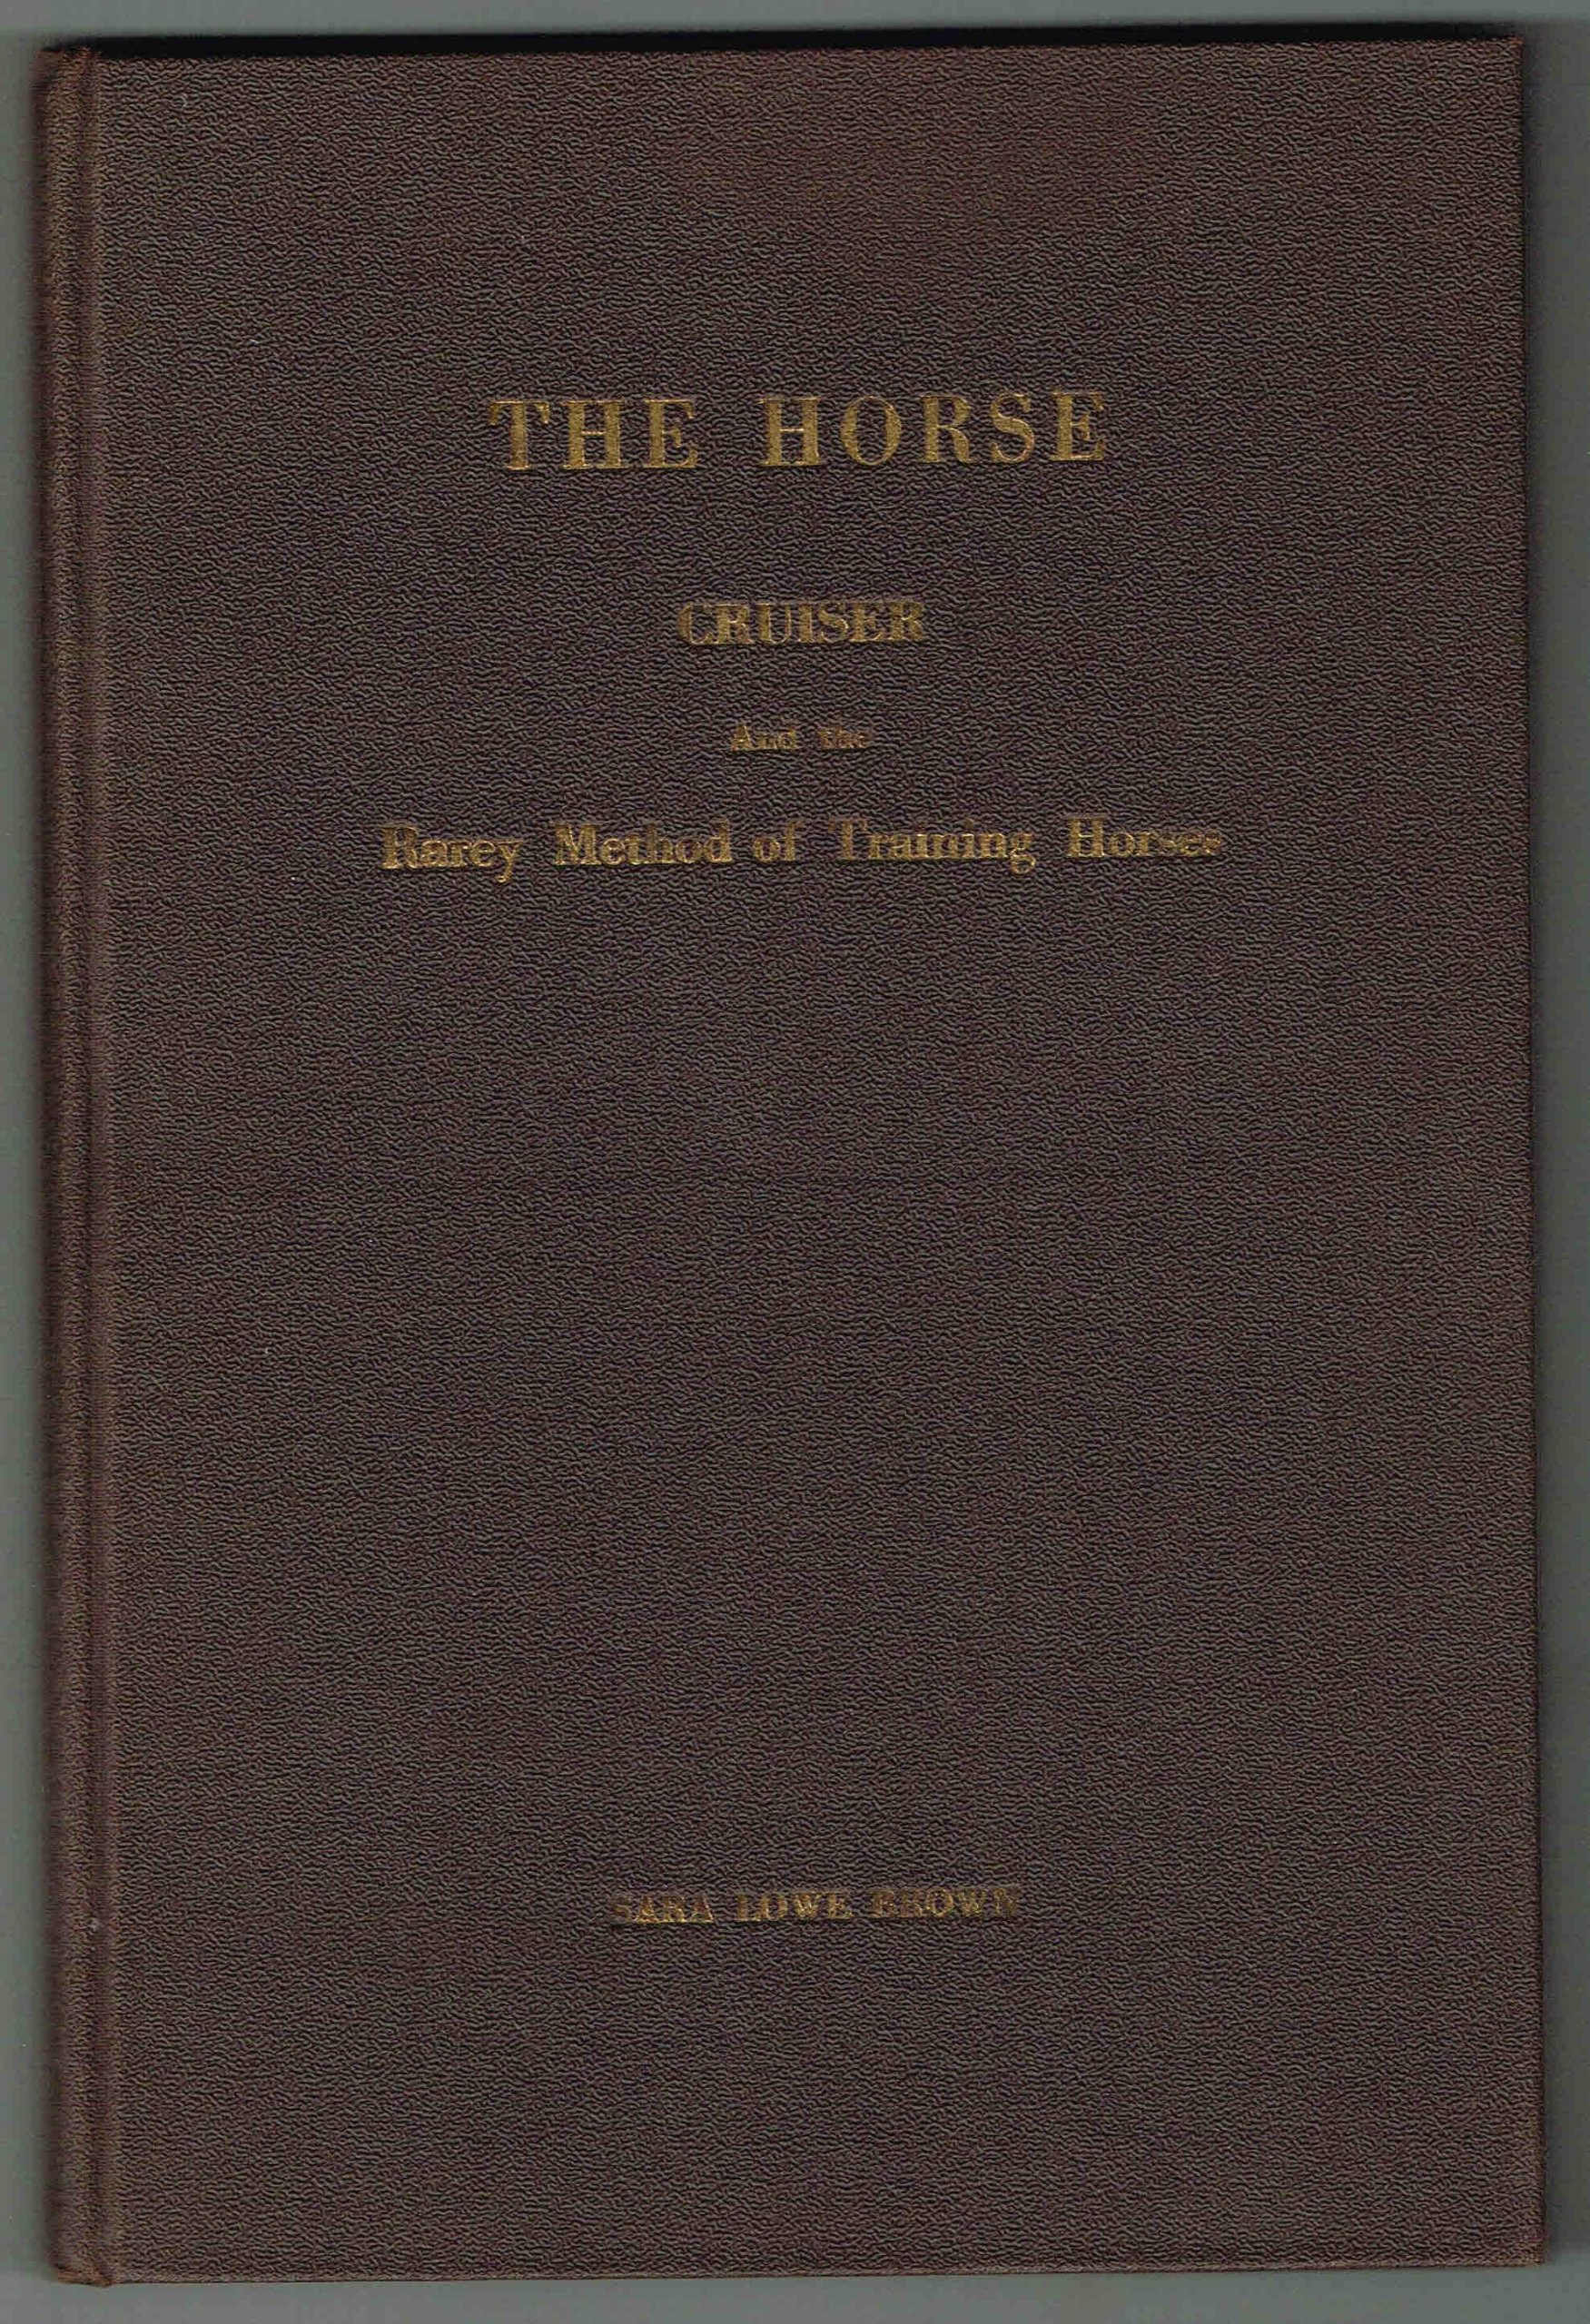 The horse Cruiser and the Rarey method of training horses